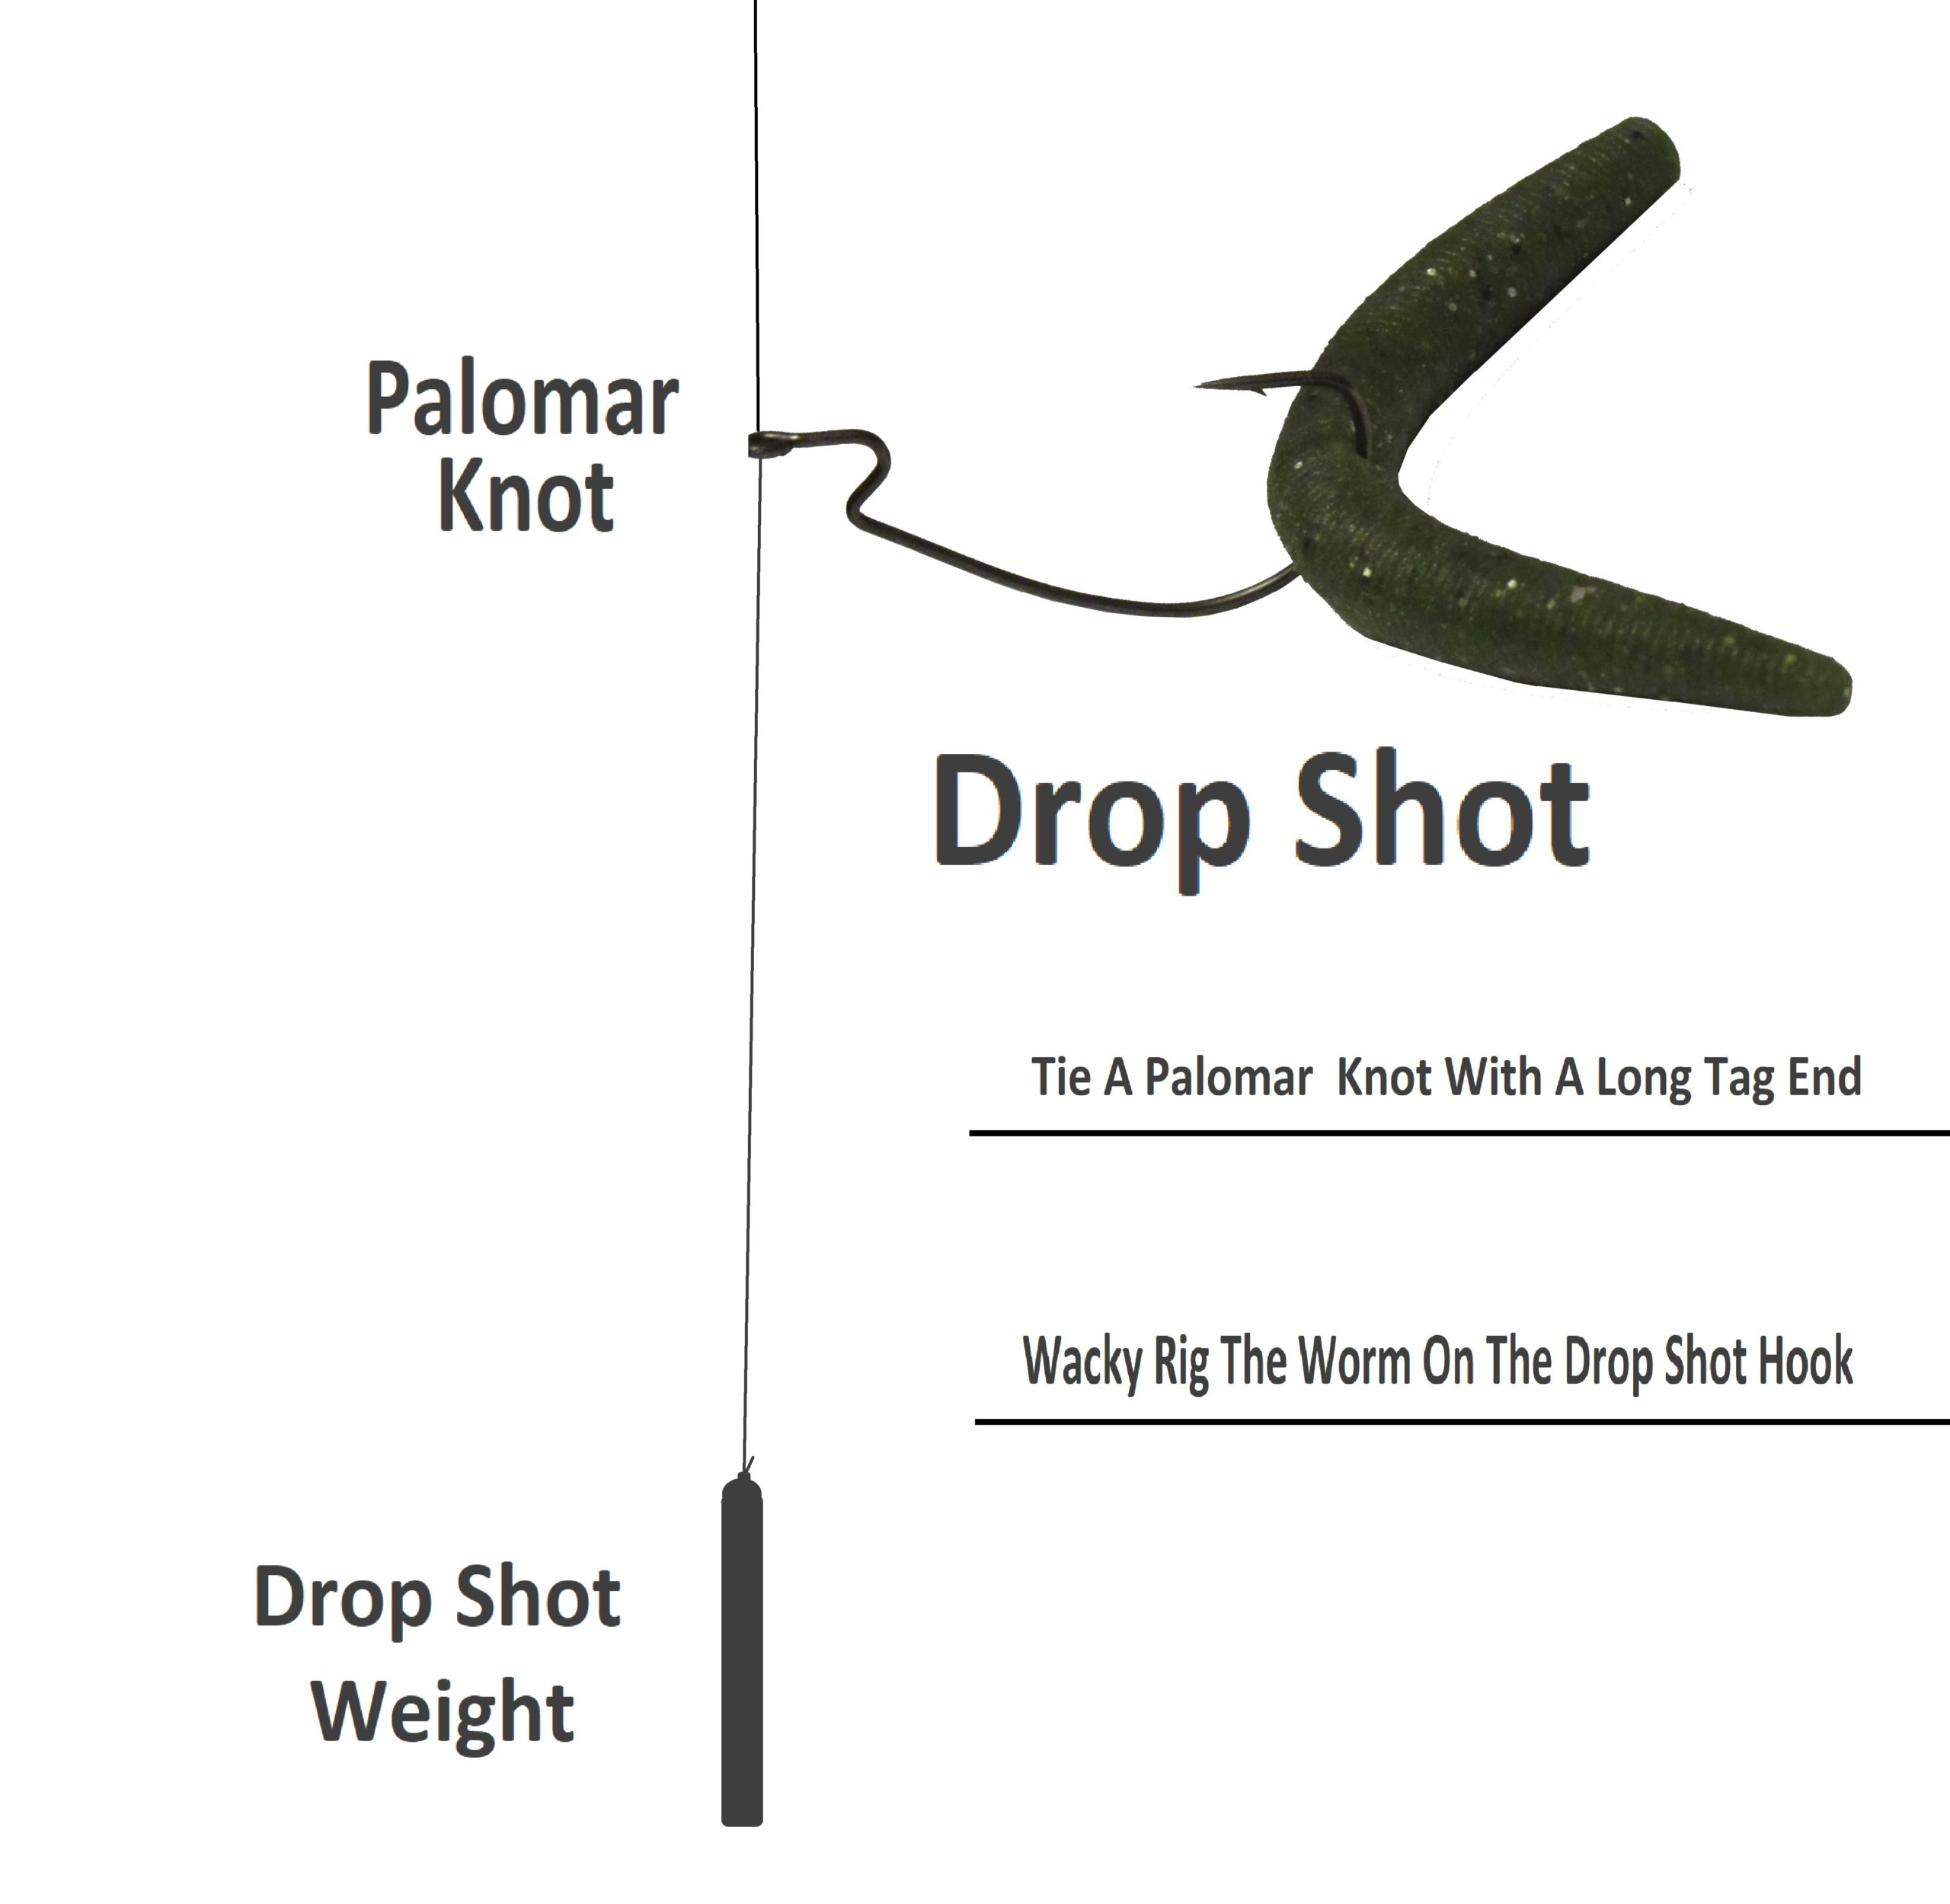 A diagram of a wacky rigged worm on a dropshot rig.